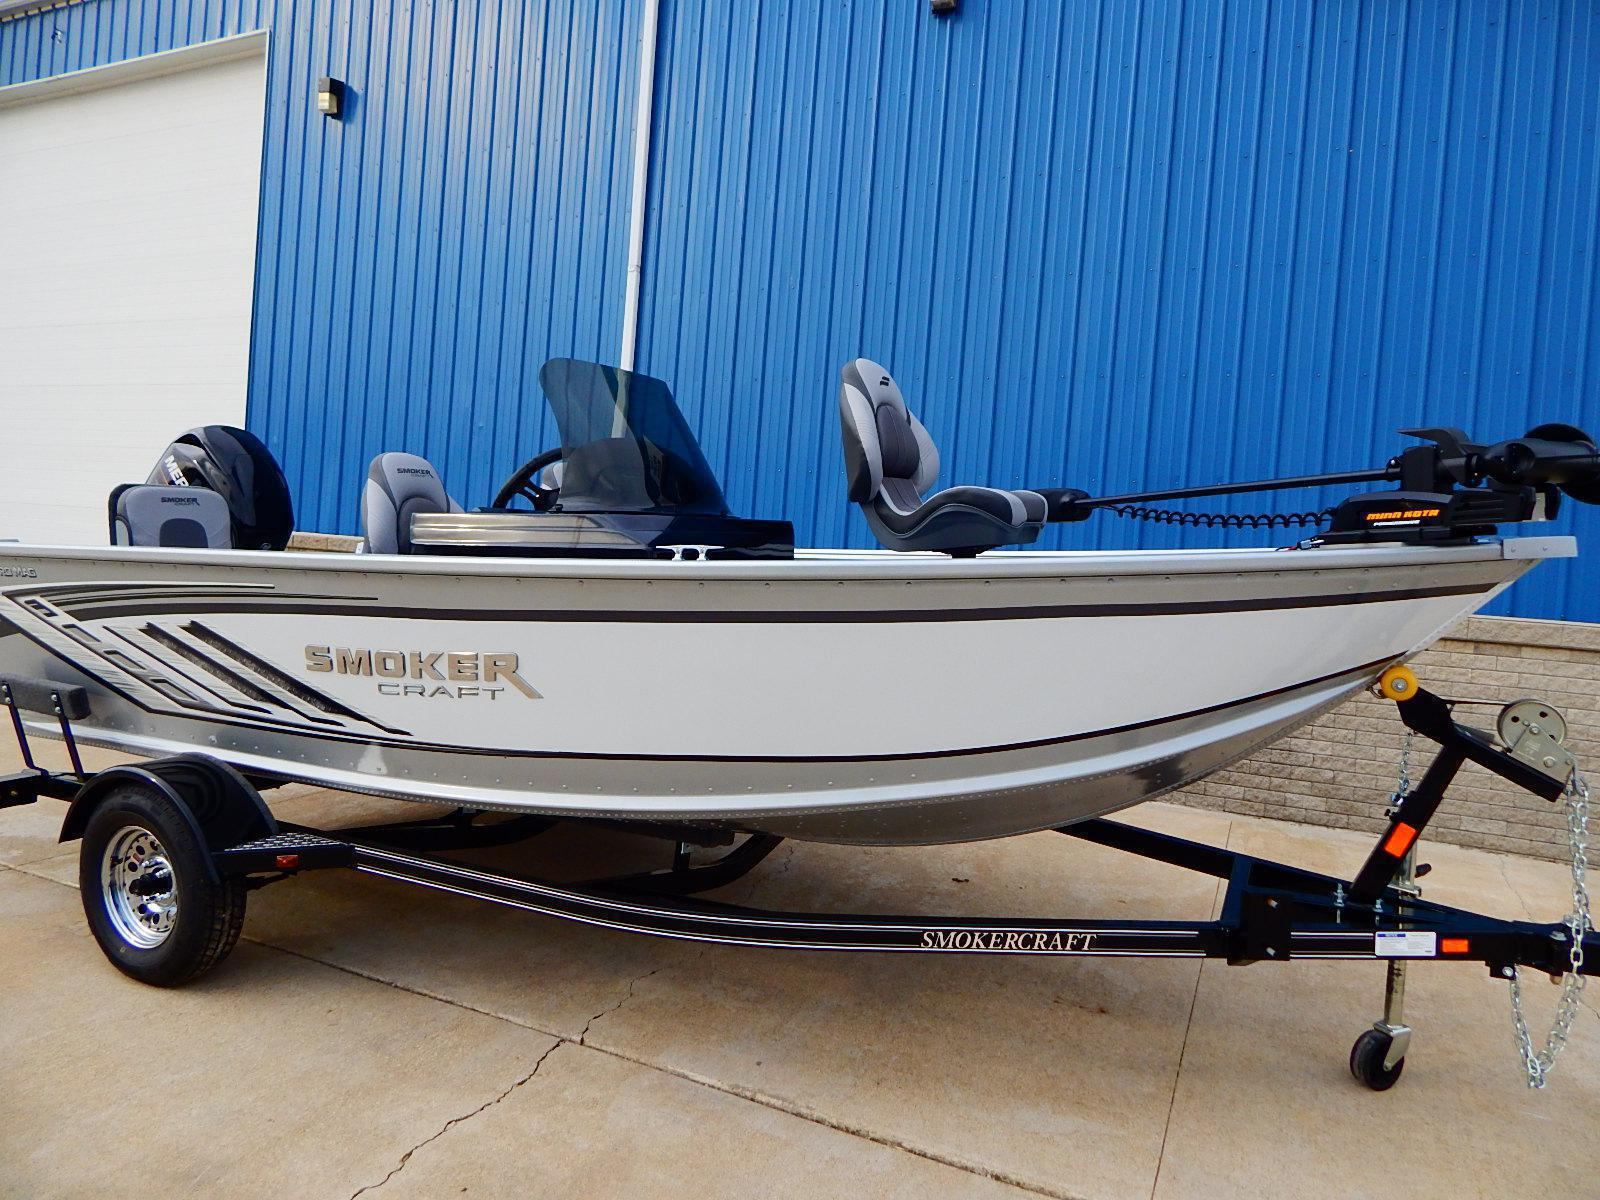 Smoker craft boats for sale page 9 of 16 for Smoker craft pro mag